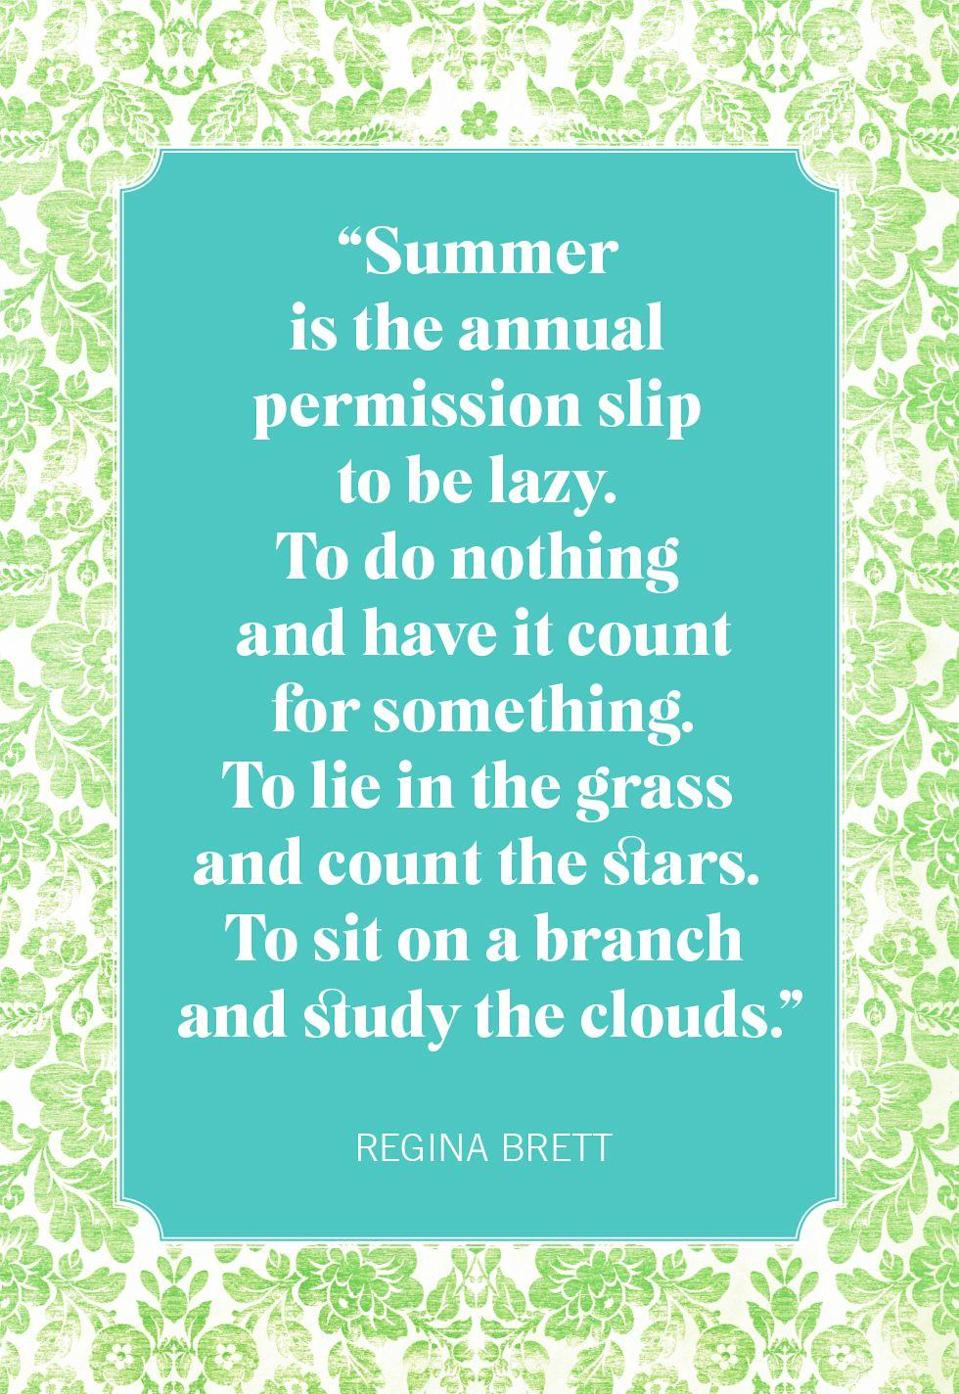 """<p>""""Summer is the annual permission slip to be lazy. To do nothing and have it count for something. To lie in the grass and count the stars. To sit on a branch and study the clouds.""""</p>"""